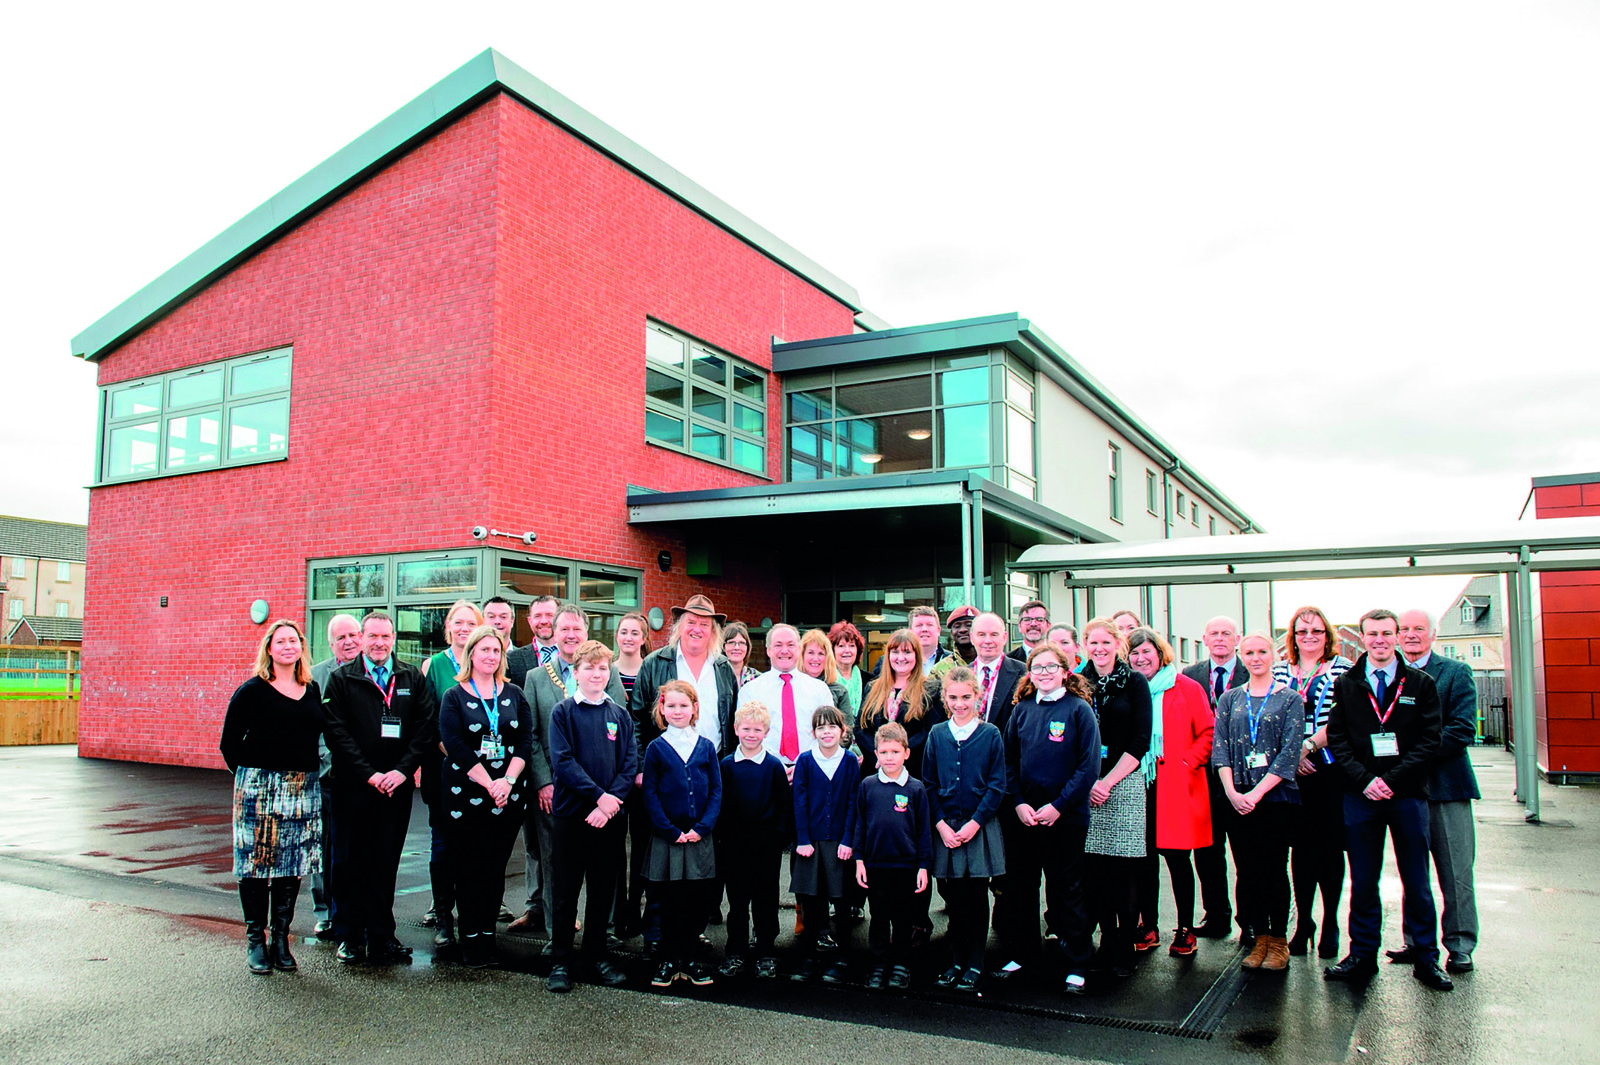 Image of the team at the handover event for Old Sarum Primary School